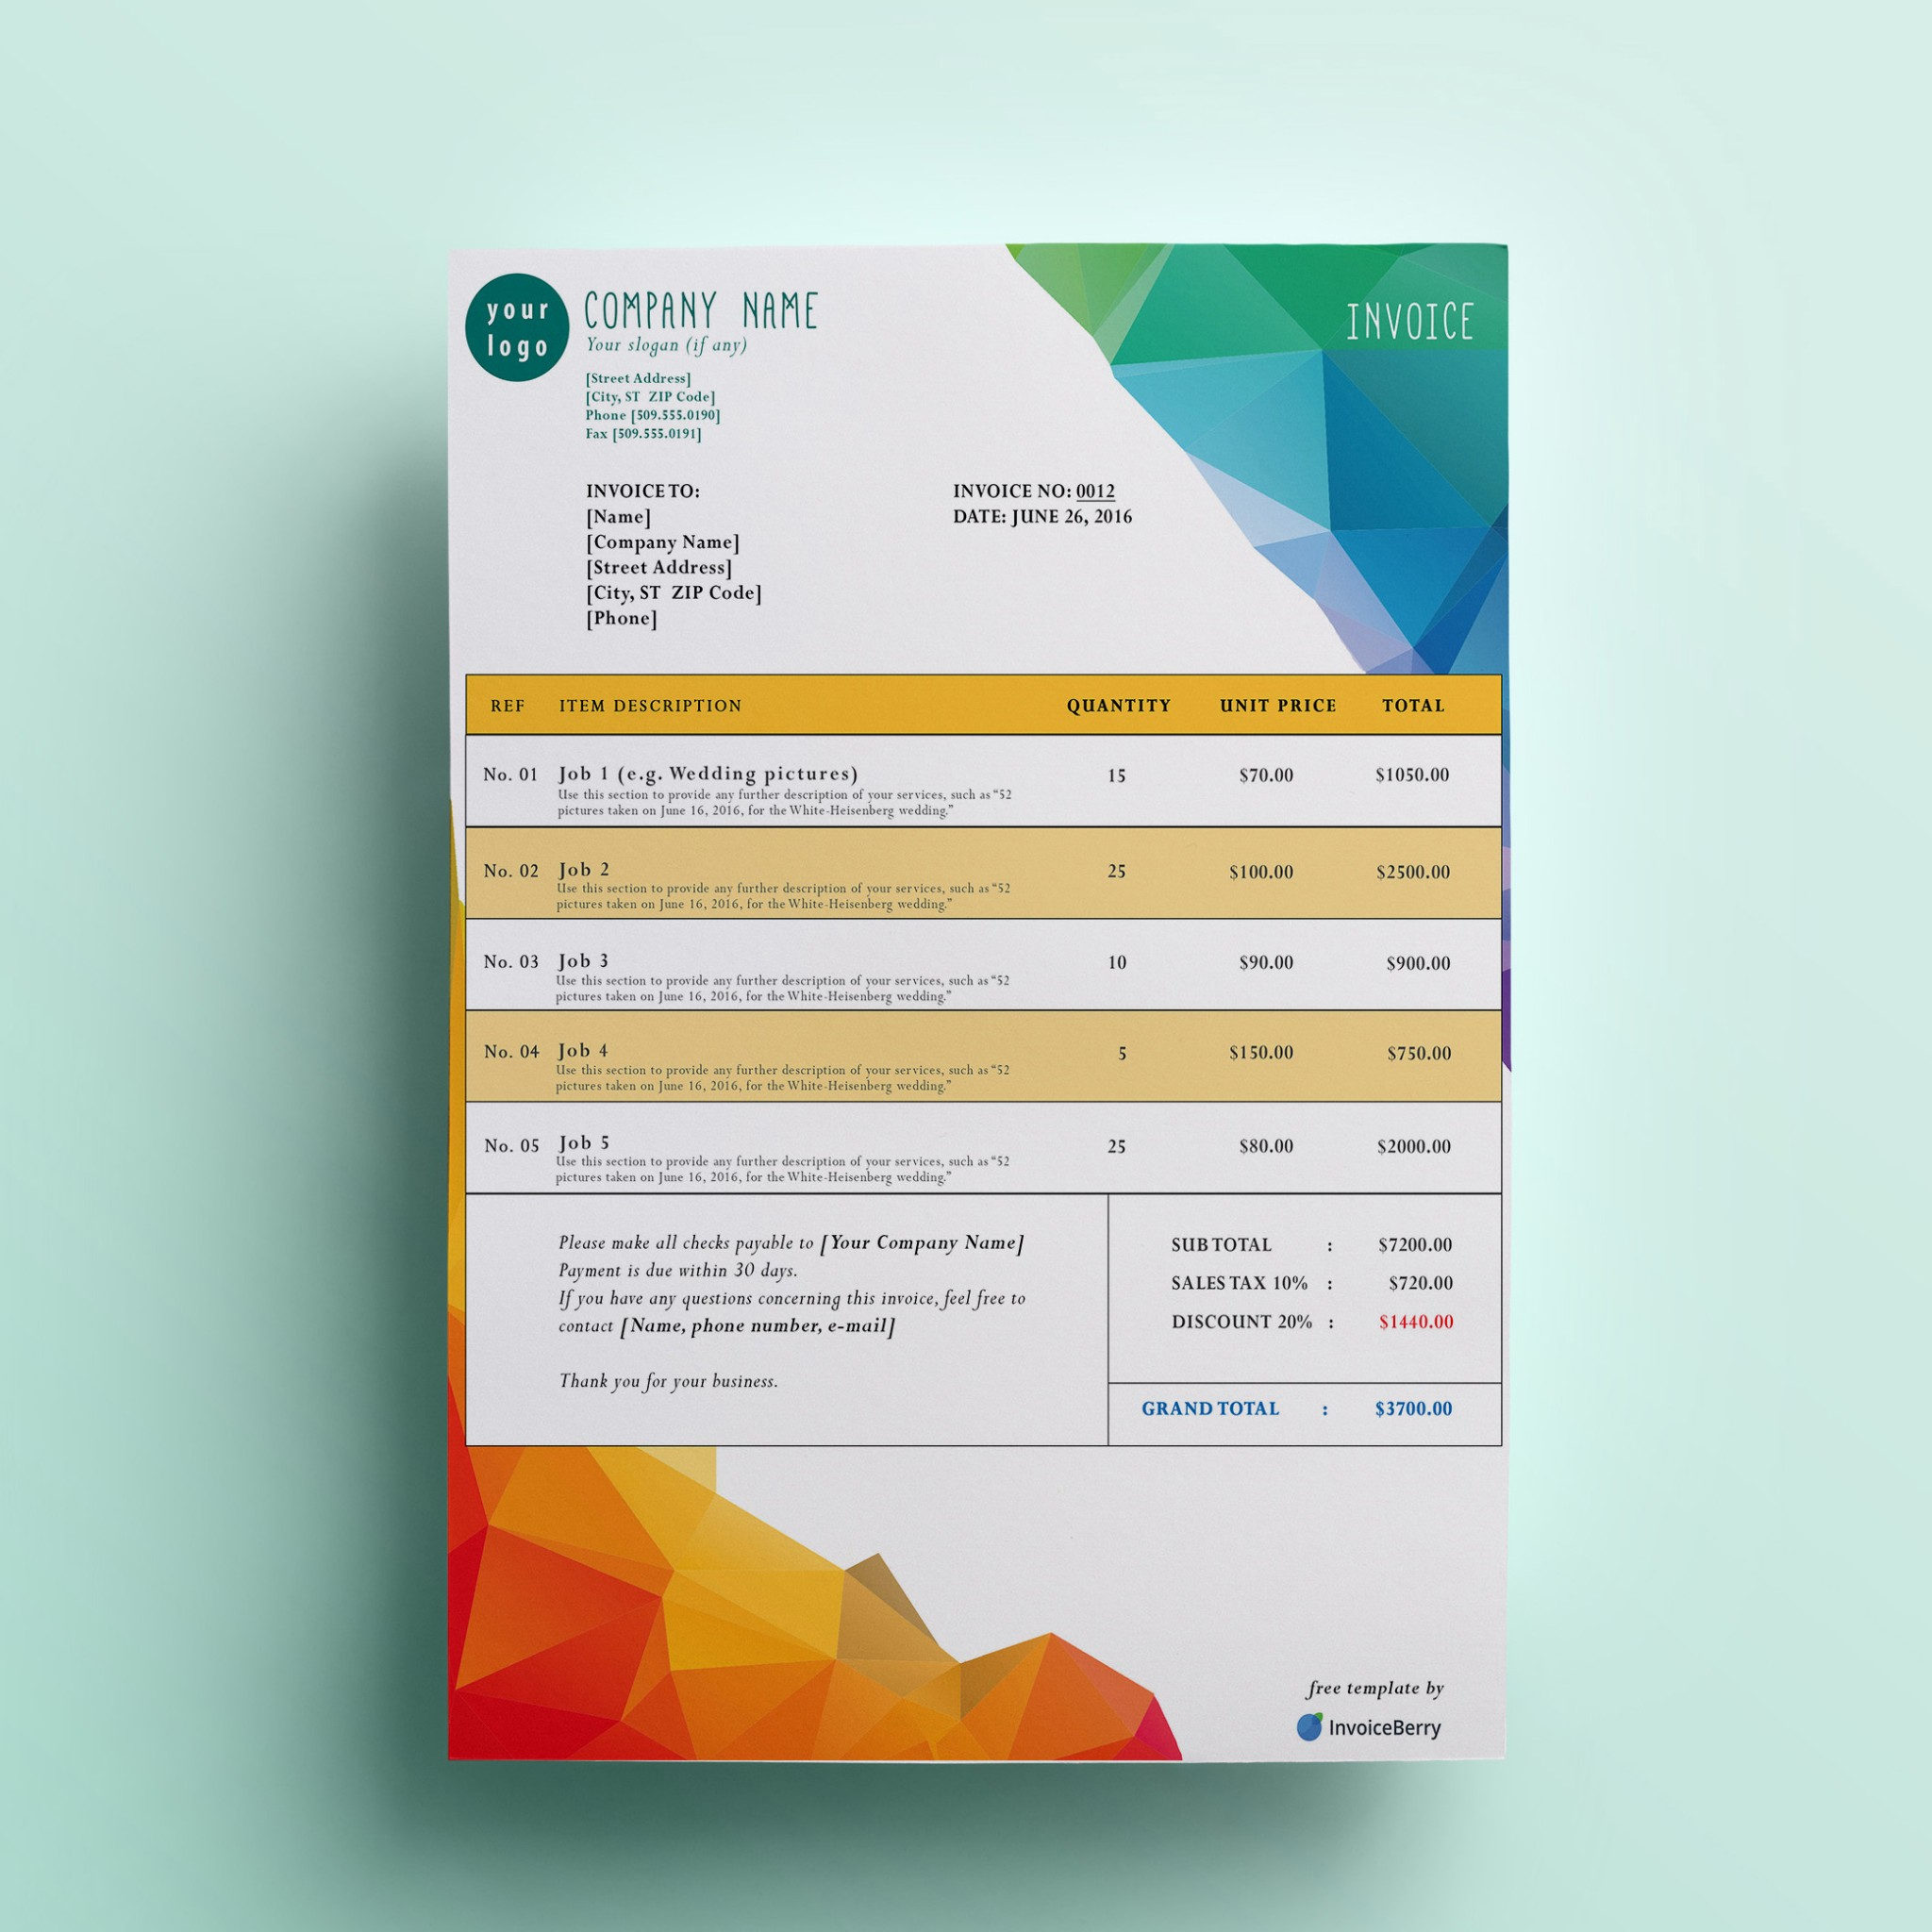 Free Invoice Templates By InvoiceBerry The Grid System - Free invoice system